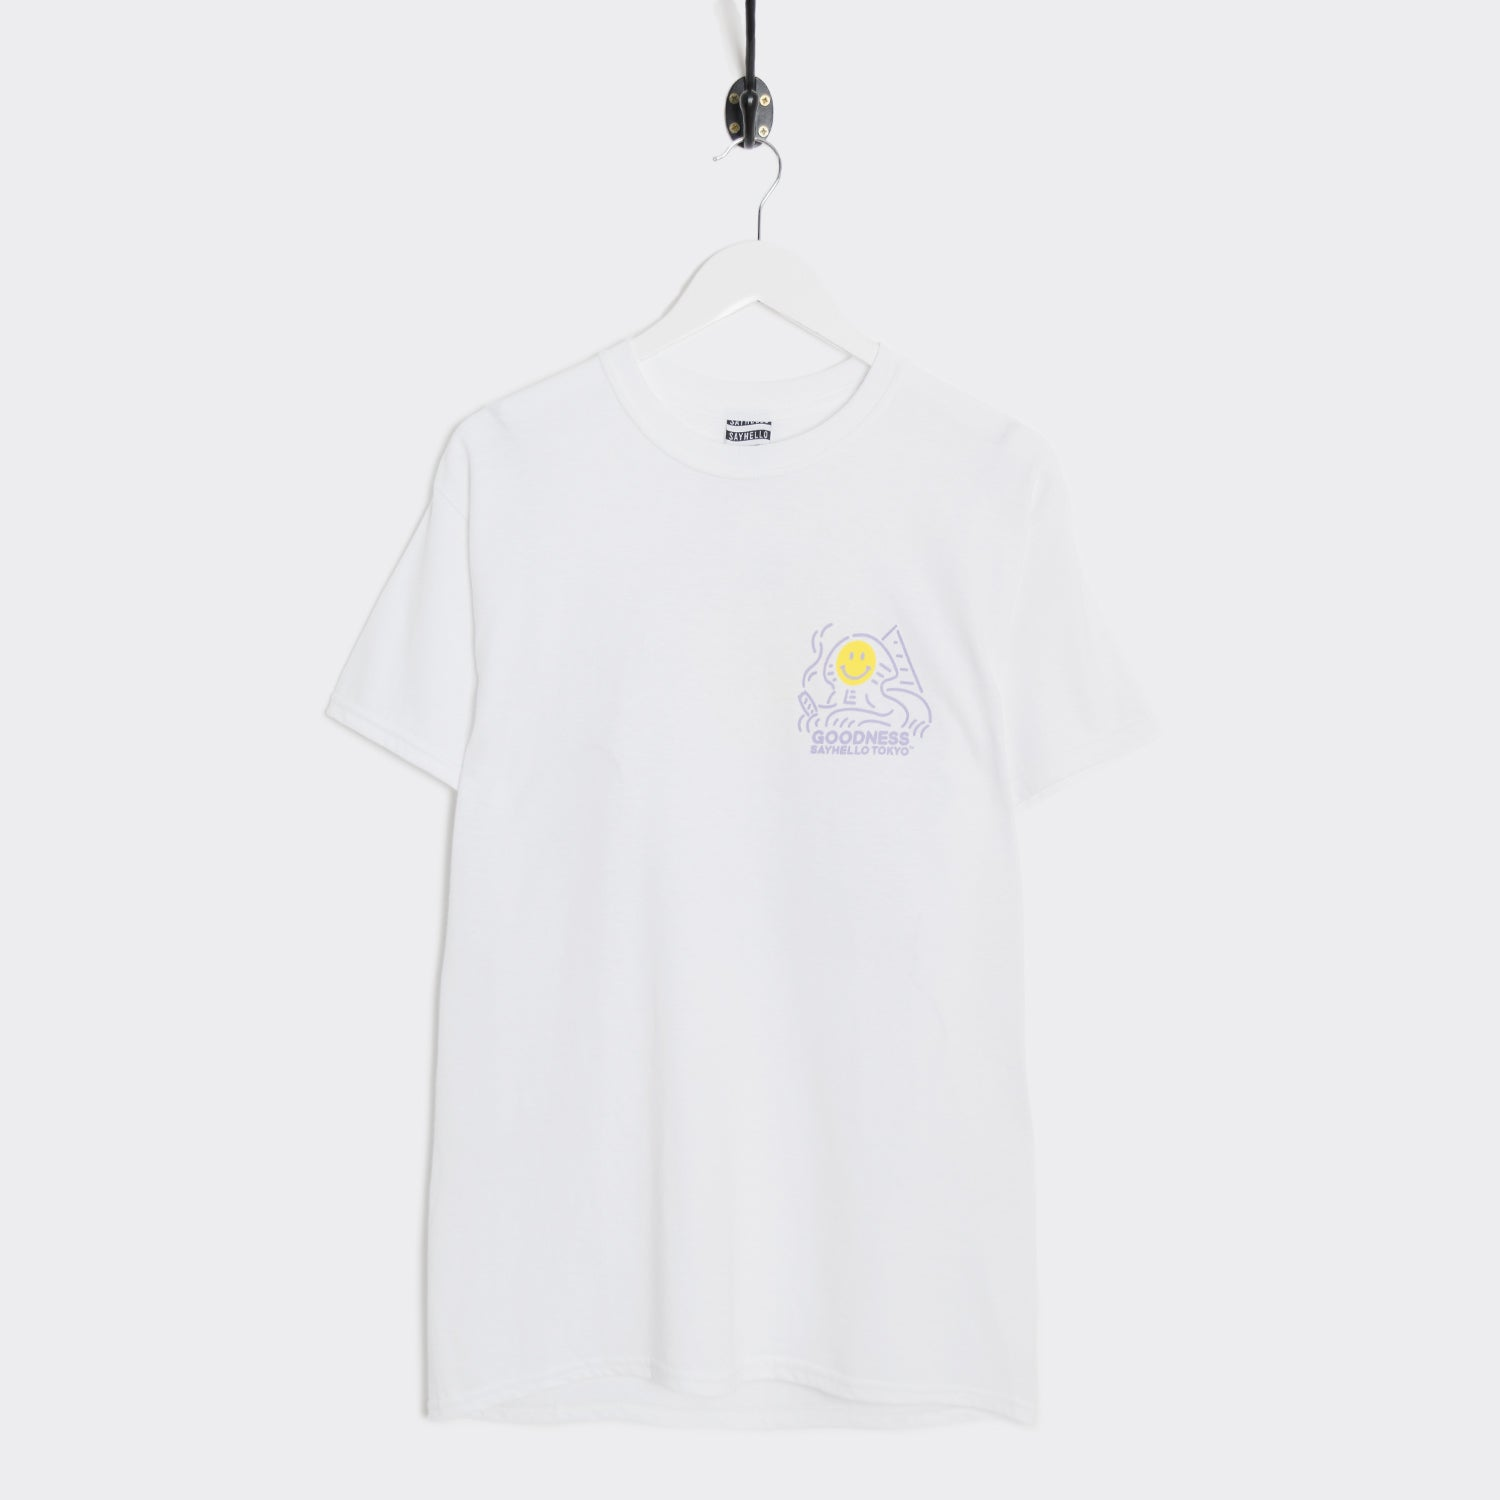 Say Hello Sfinx T-Shirt - White